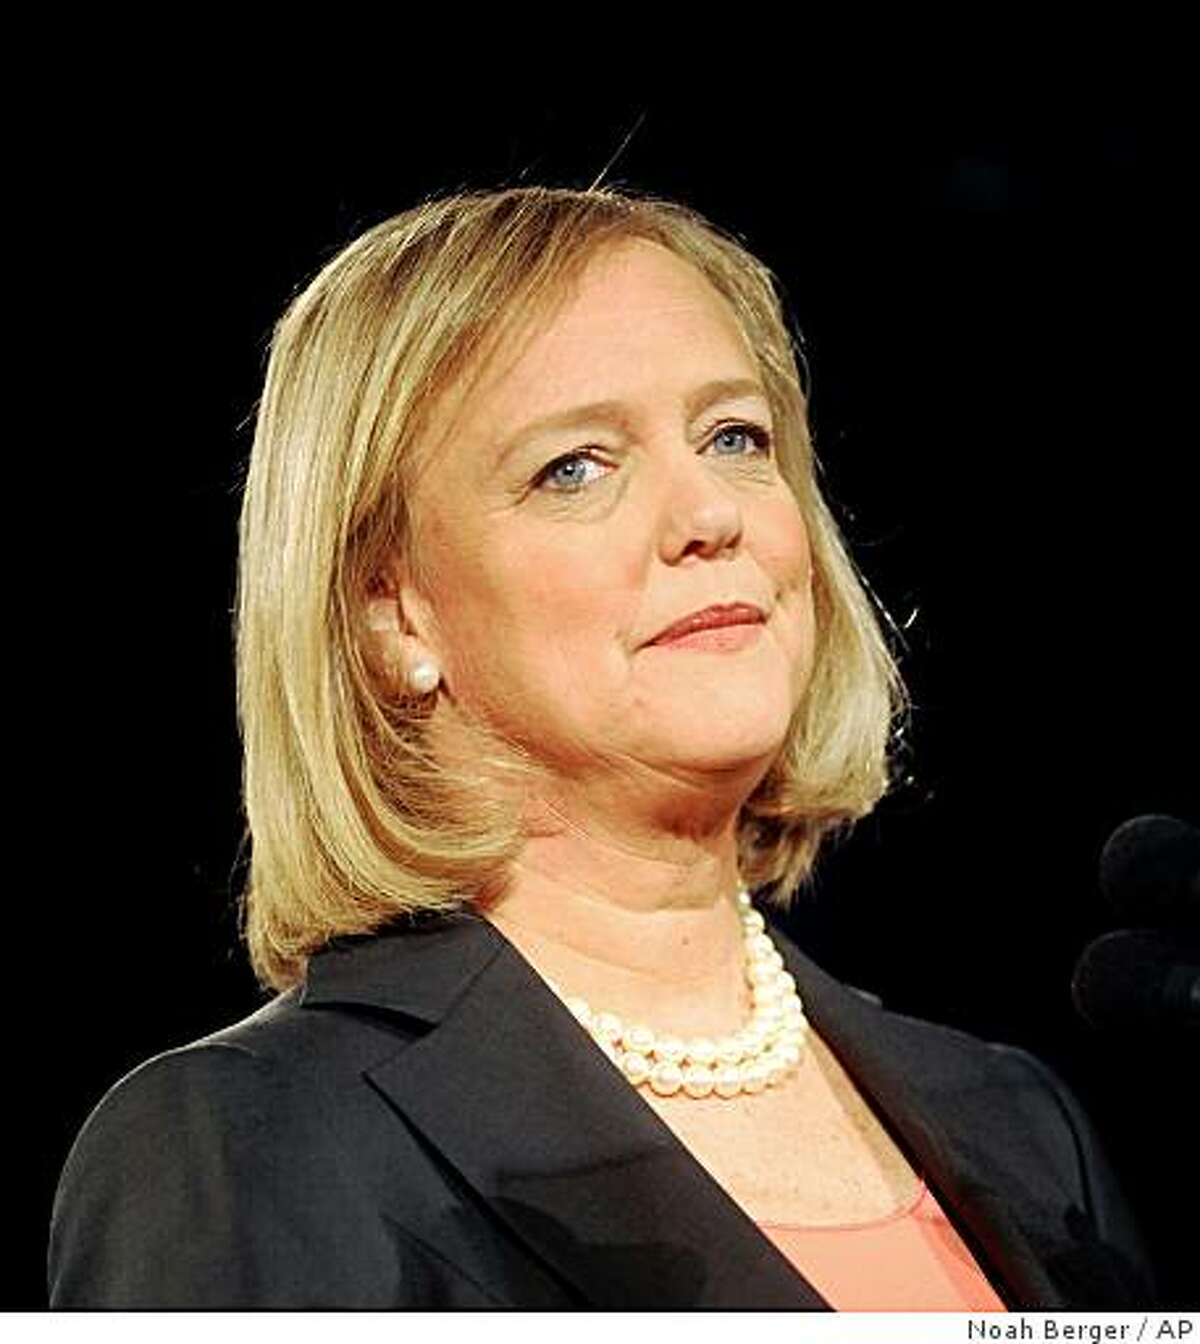 Meg Whitman, a likely candidate for California governor, speaks in San Jose, Calif., on Tuesday, Feb. 17, 2009. The former eBay chief executive stressed her goals of job creation and limited government. (AP Photo/Noah Berger)